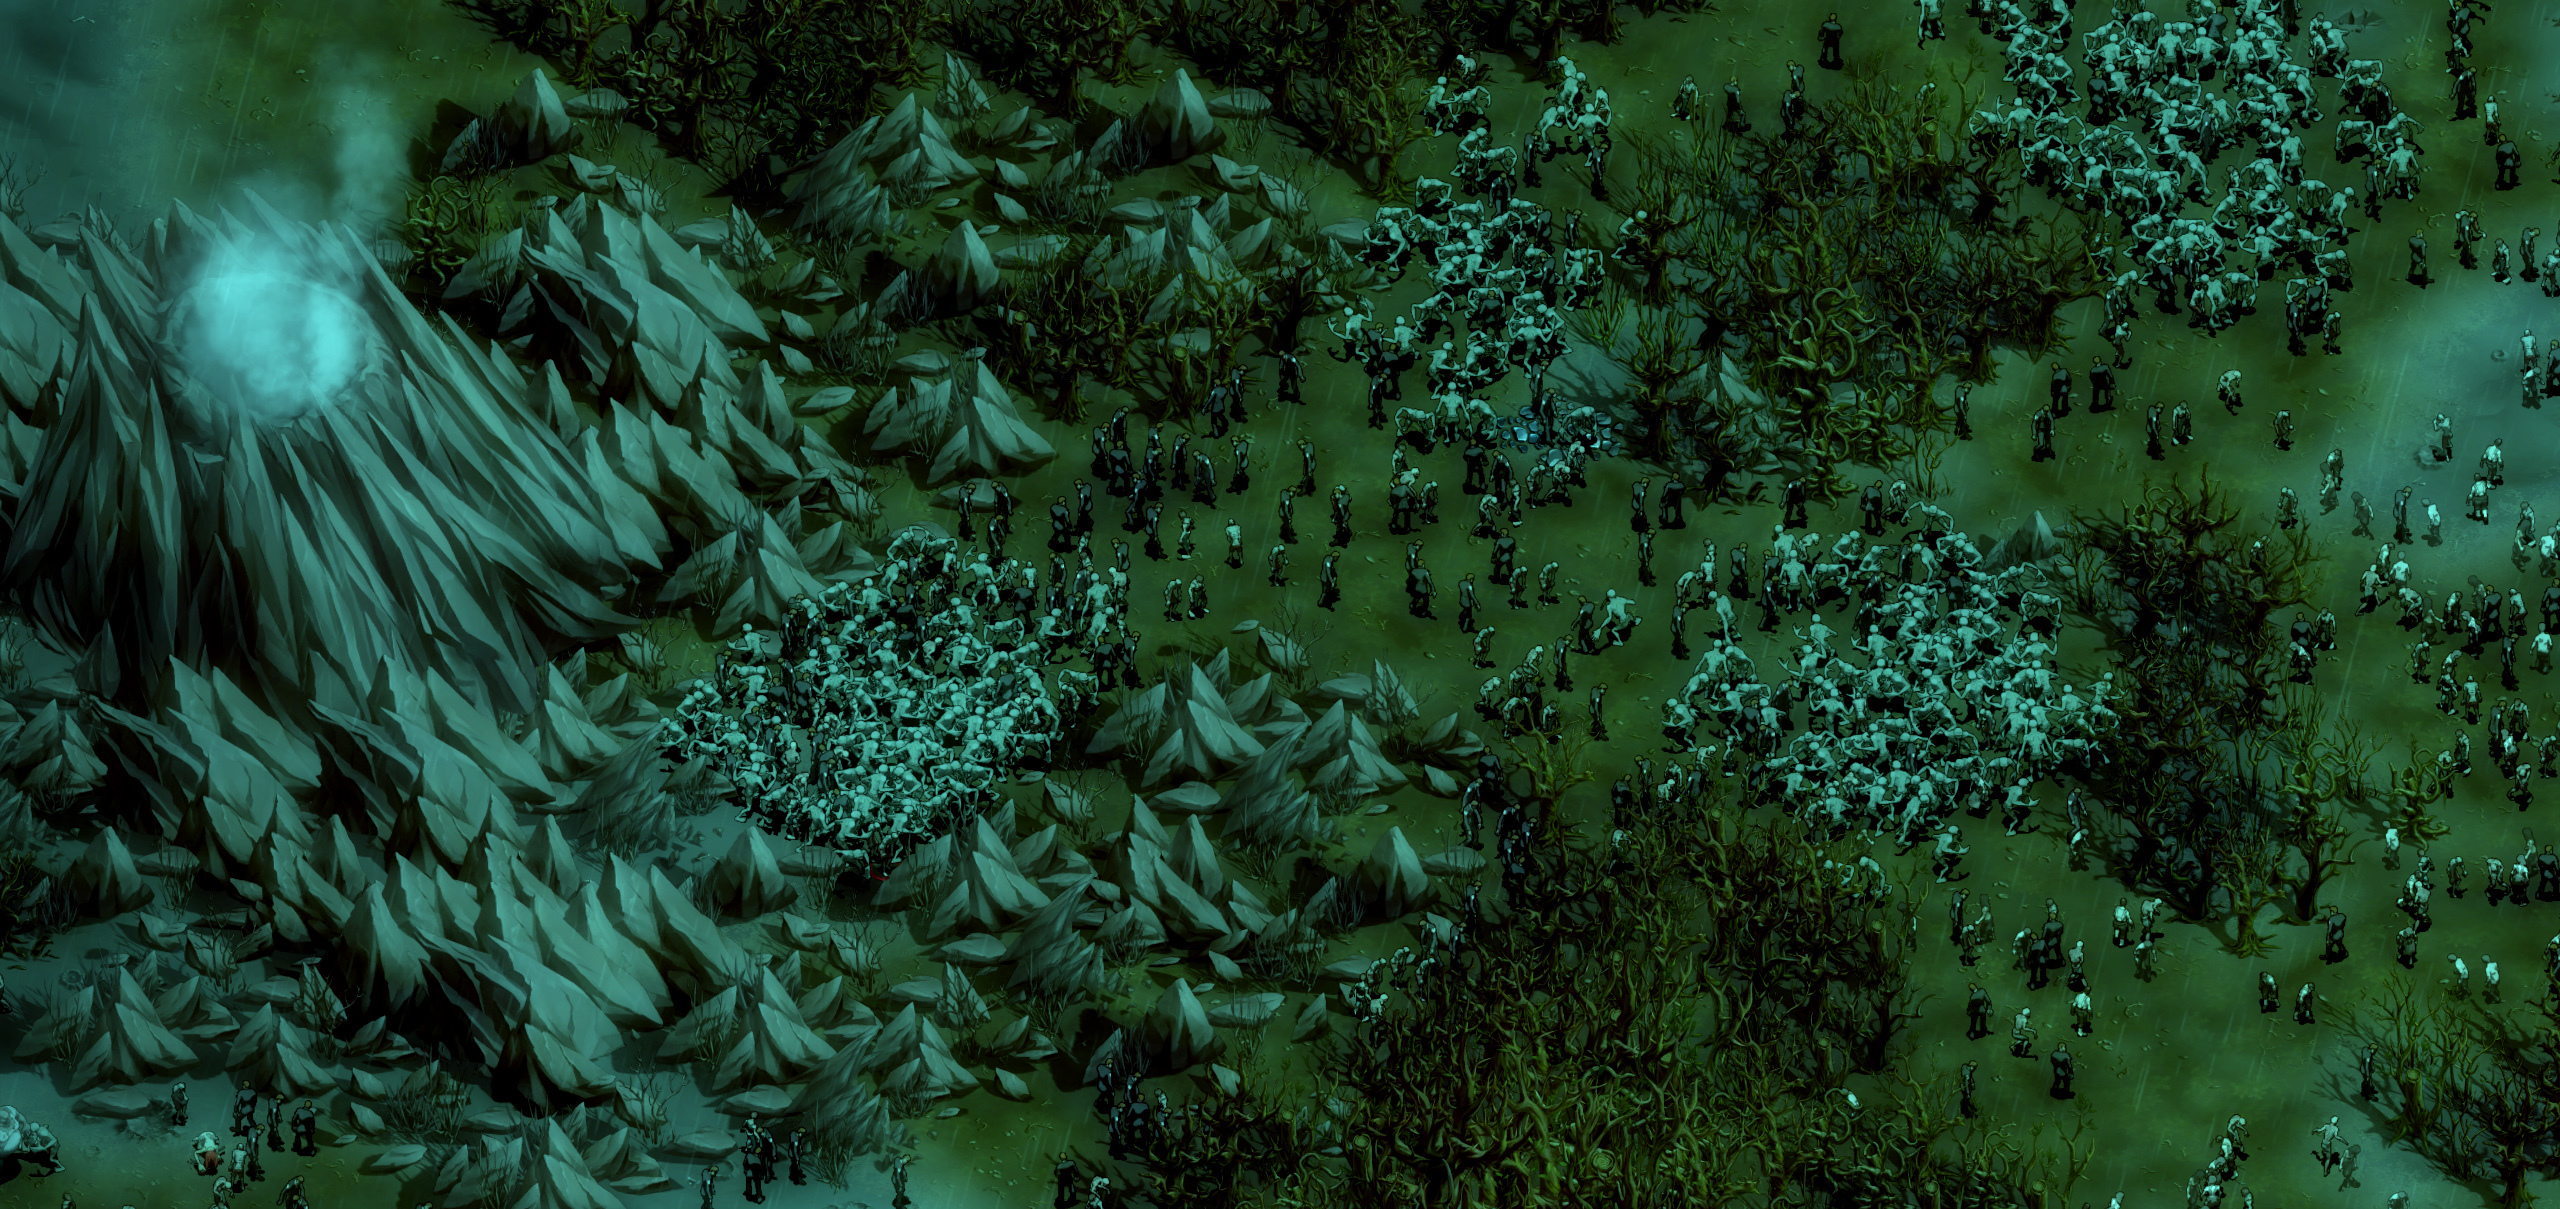 They Are Billions Update: Trailer: The New Empire Campaign